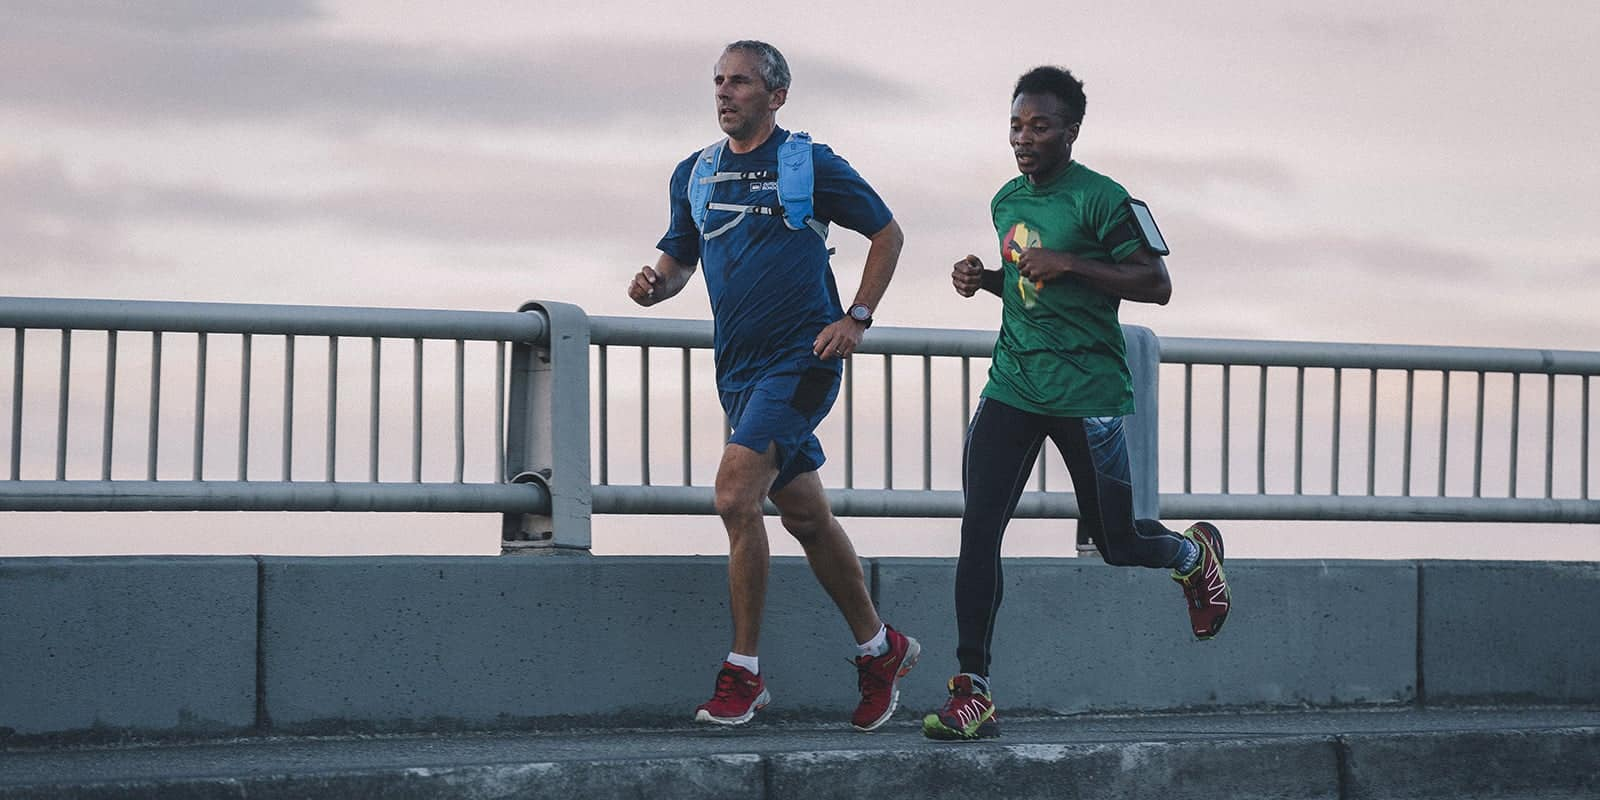 Marathon Training: How To Become The Best